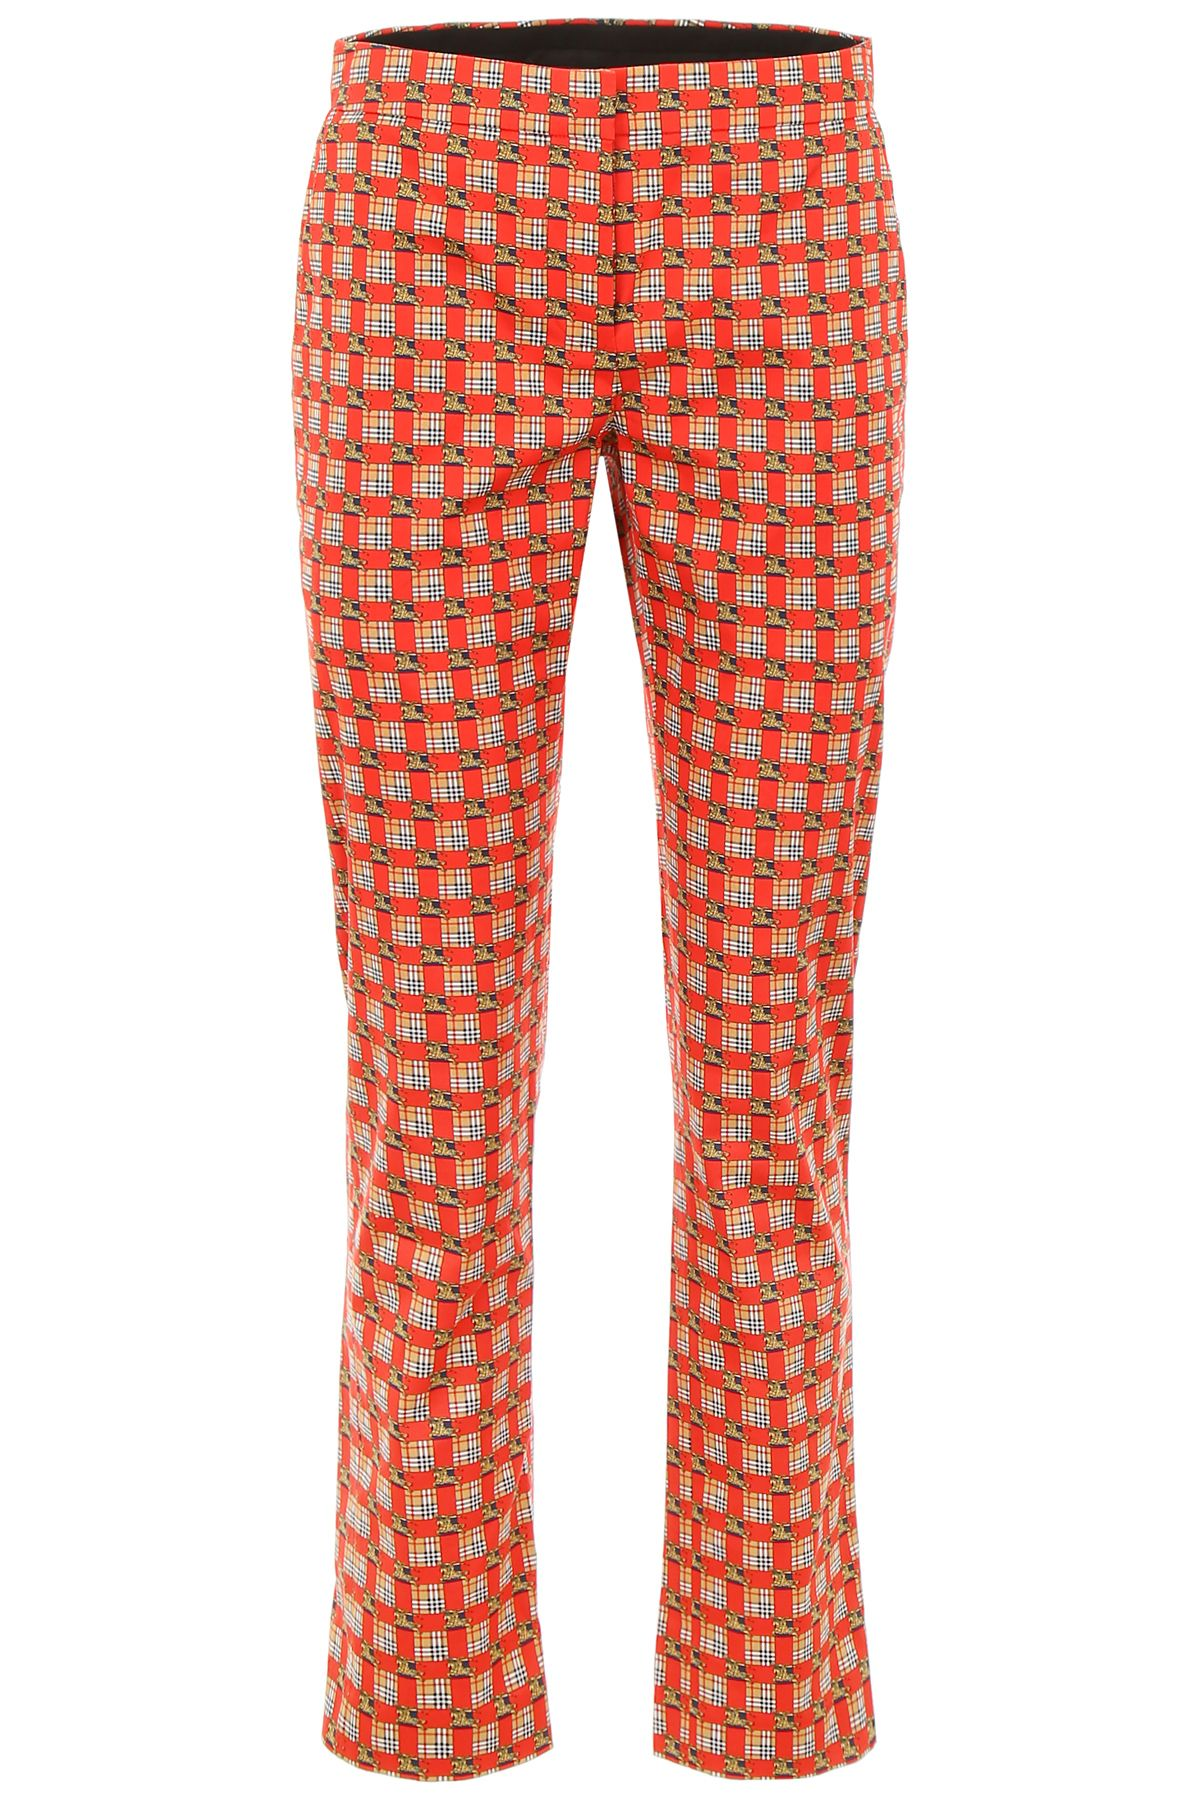 Hanover Trousers in Bright Red Ip Pat